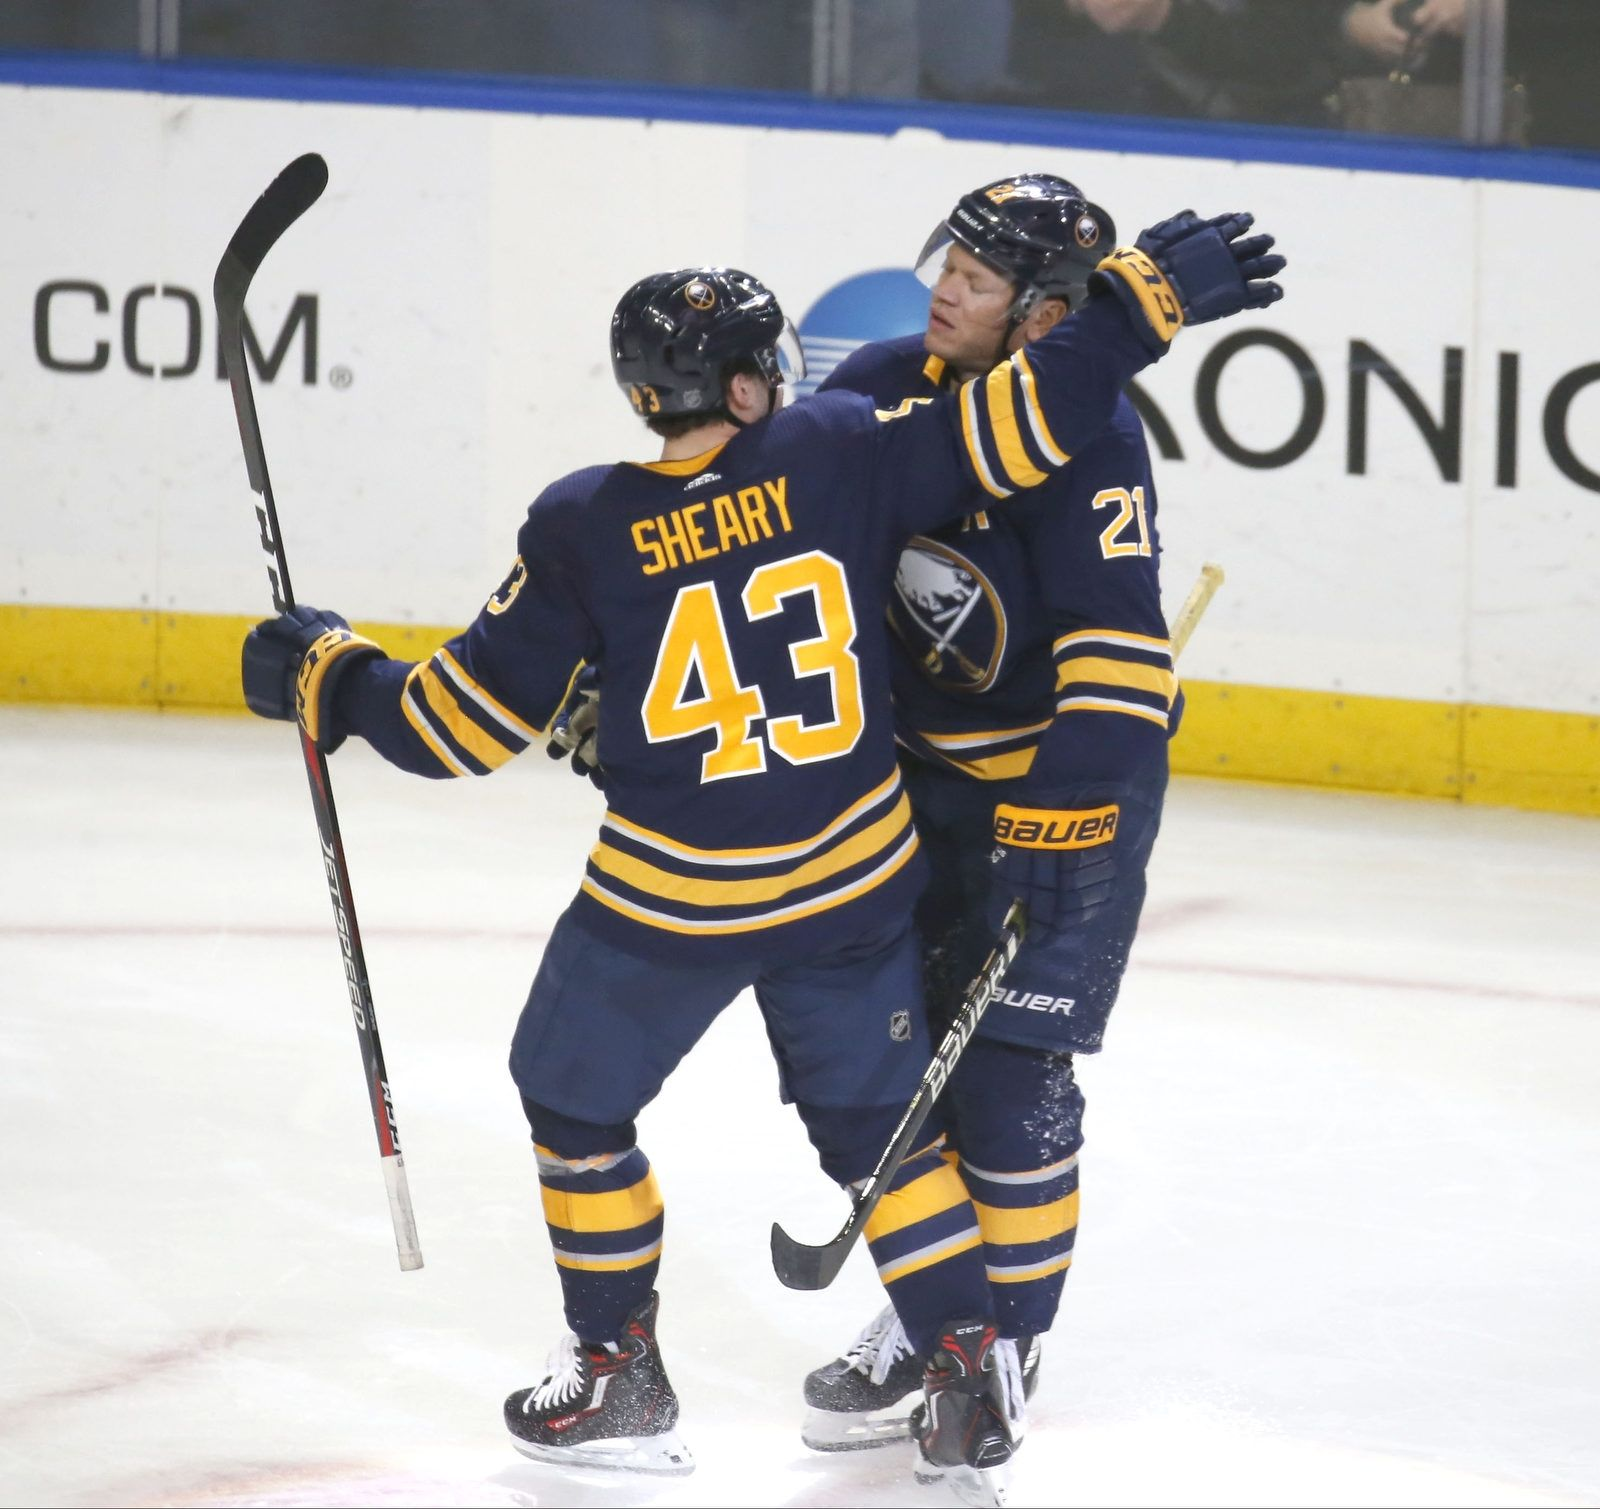 Buffalo's Conor Sheary (43) celebrates the only goal of the night by Kyle Okposo (21).